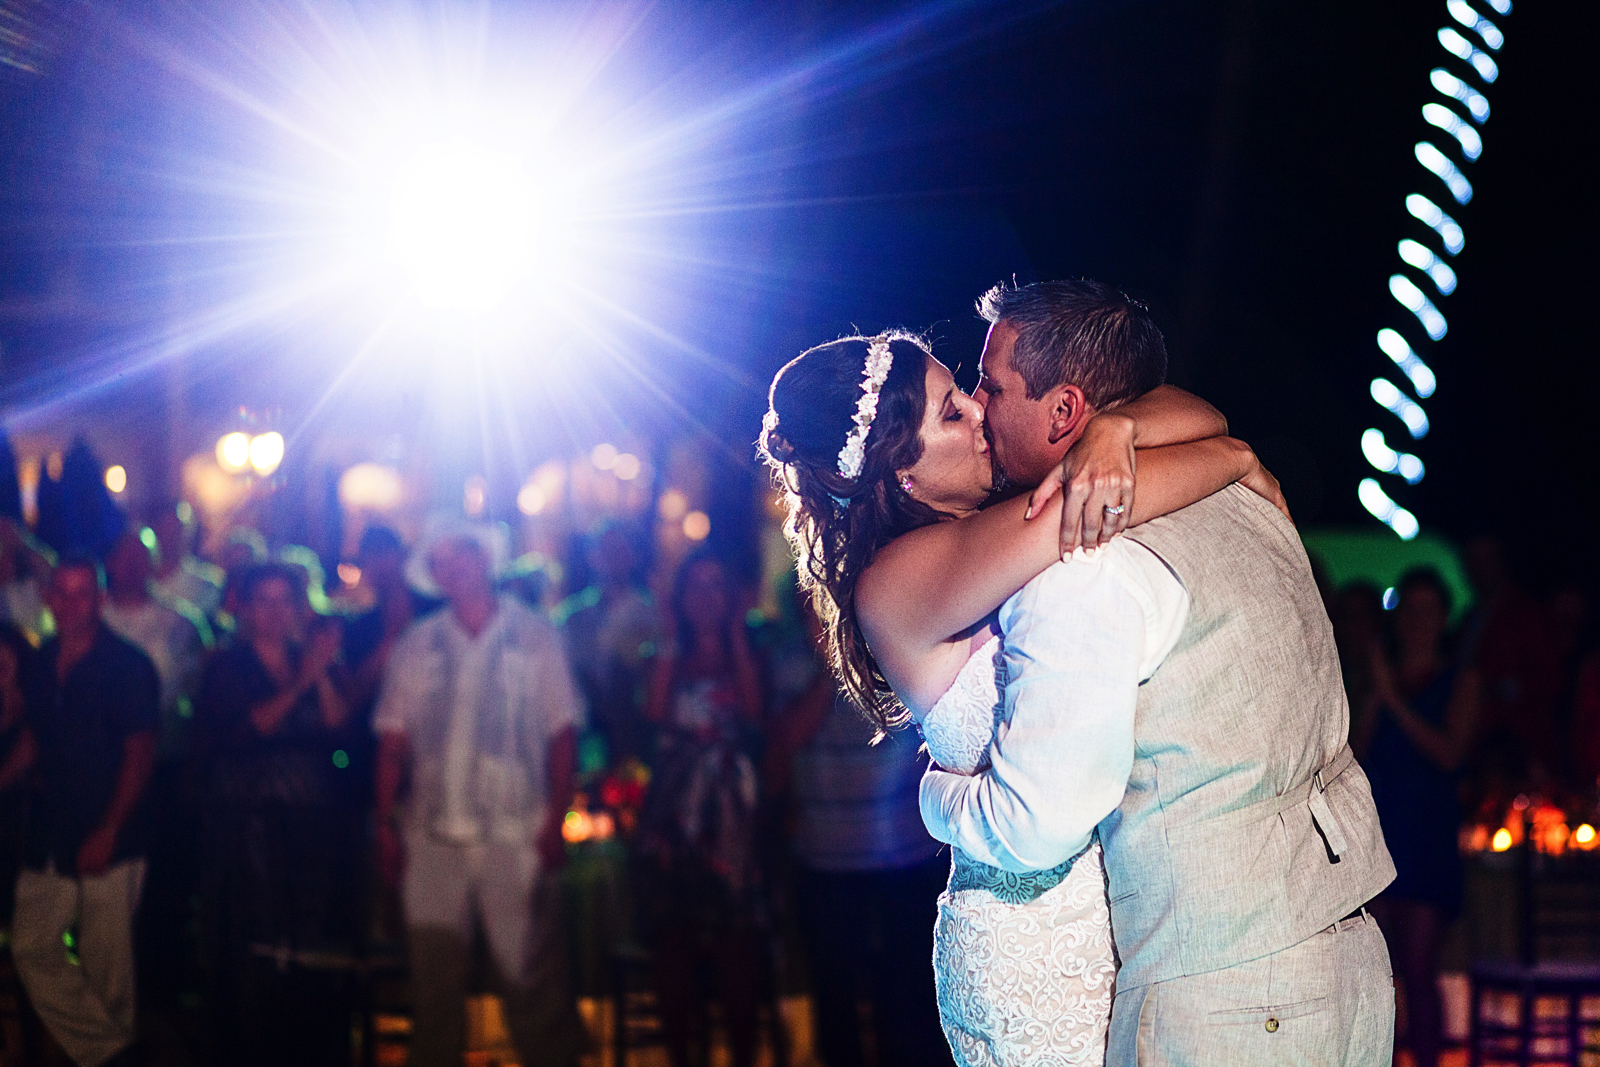 Groom and bride kissing on the dance floor during their entrance to the wedding reception